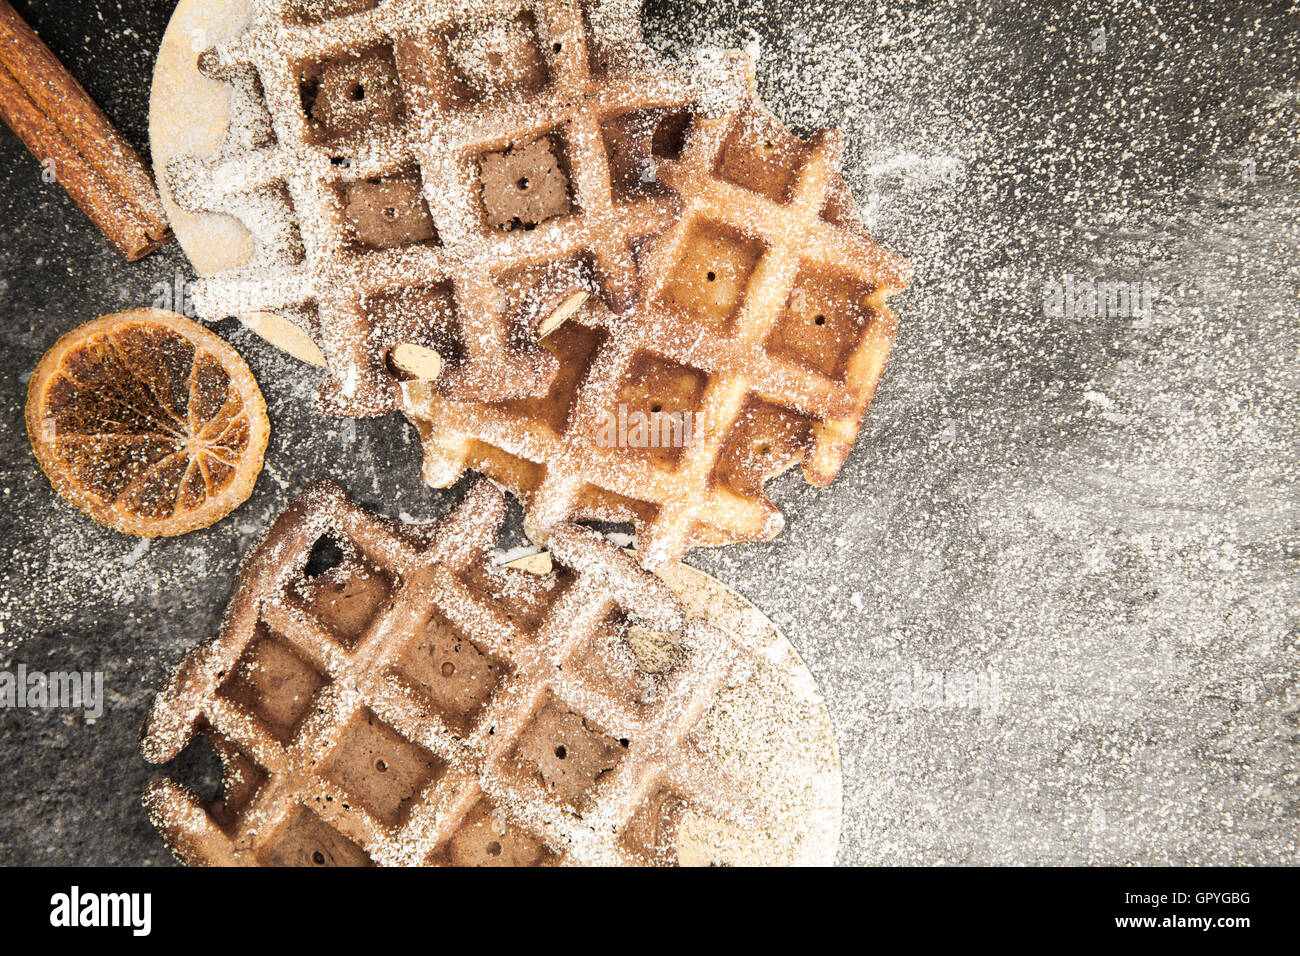 Food background with belgian waffles - Stock Image